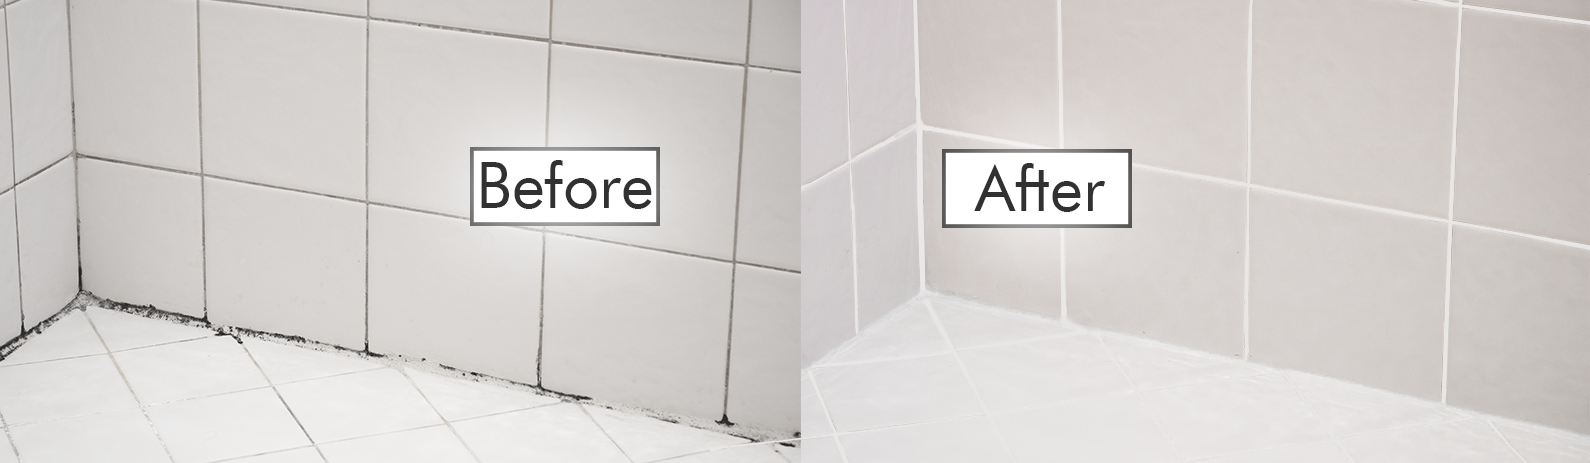 Before and After of Cleaning Tile and Grout